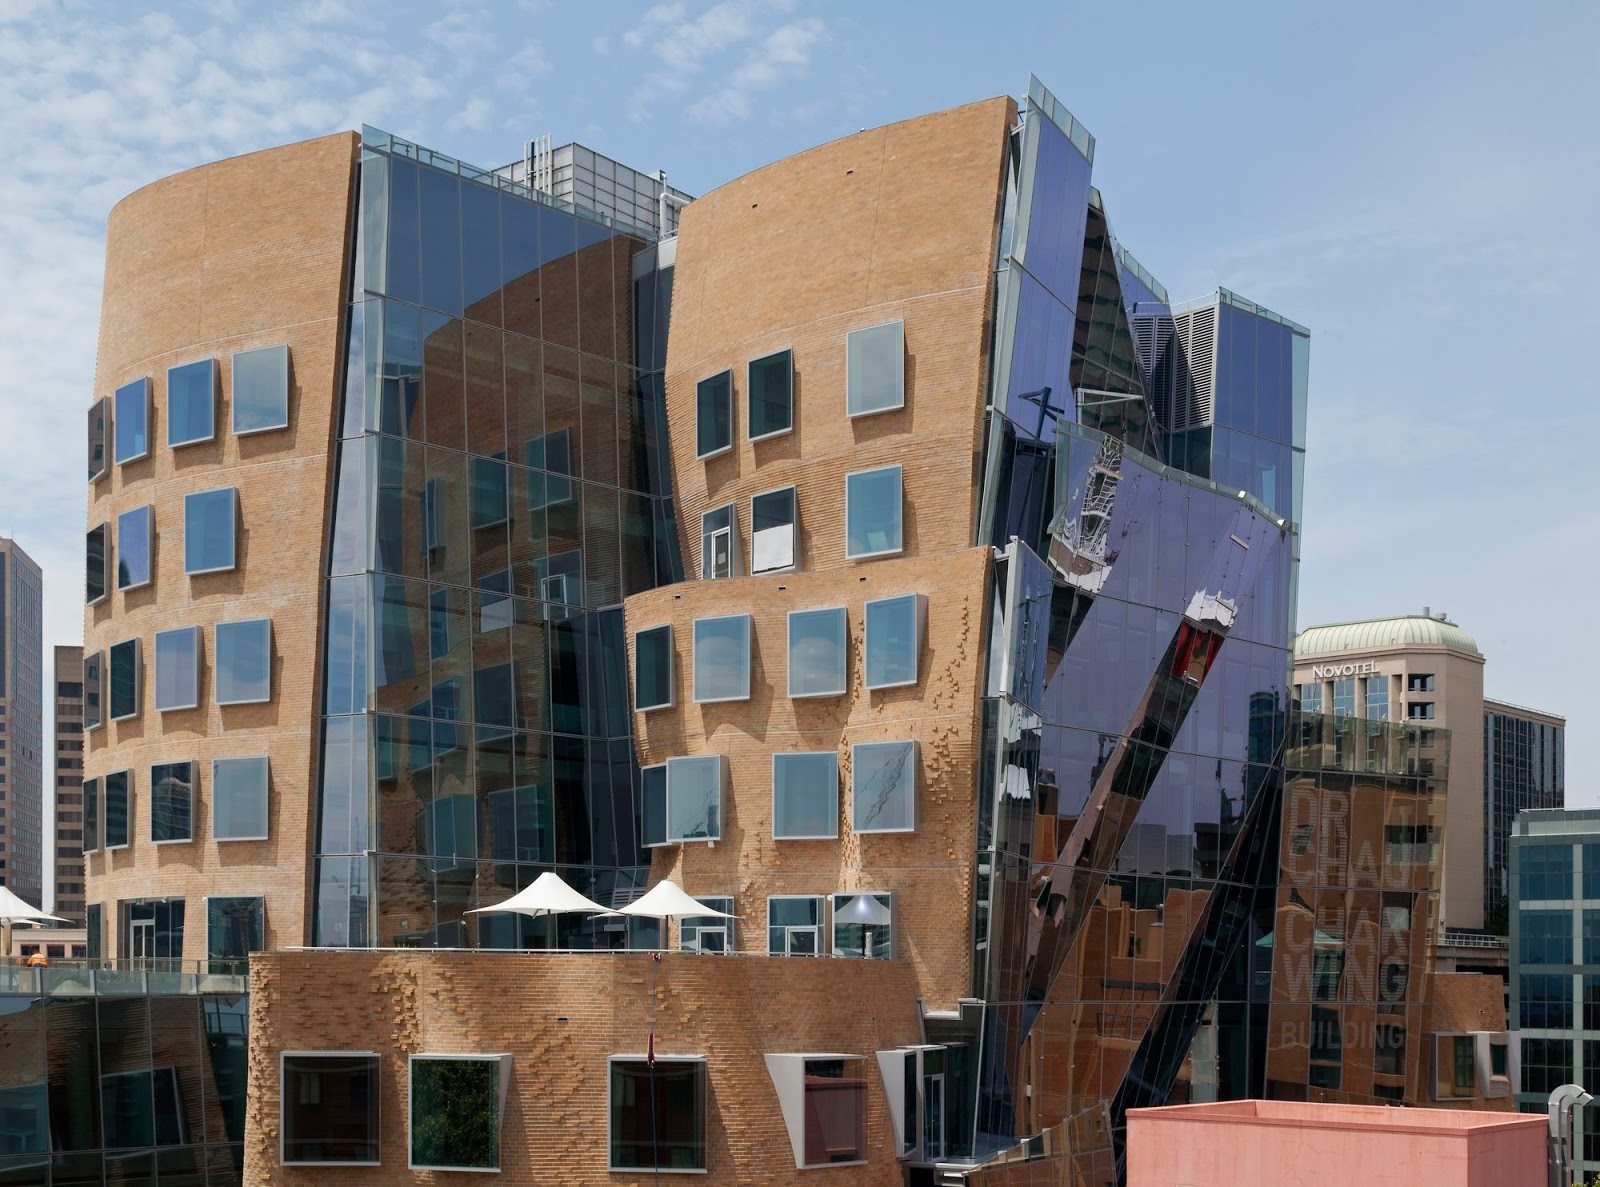 A f a s i a frank gehry architects - Gehry architekt ...